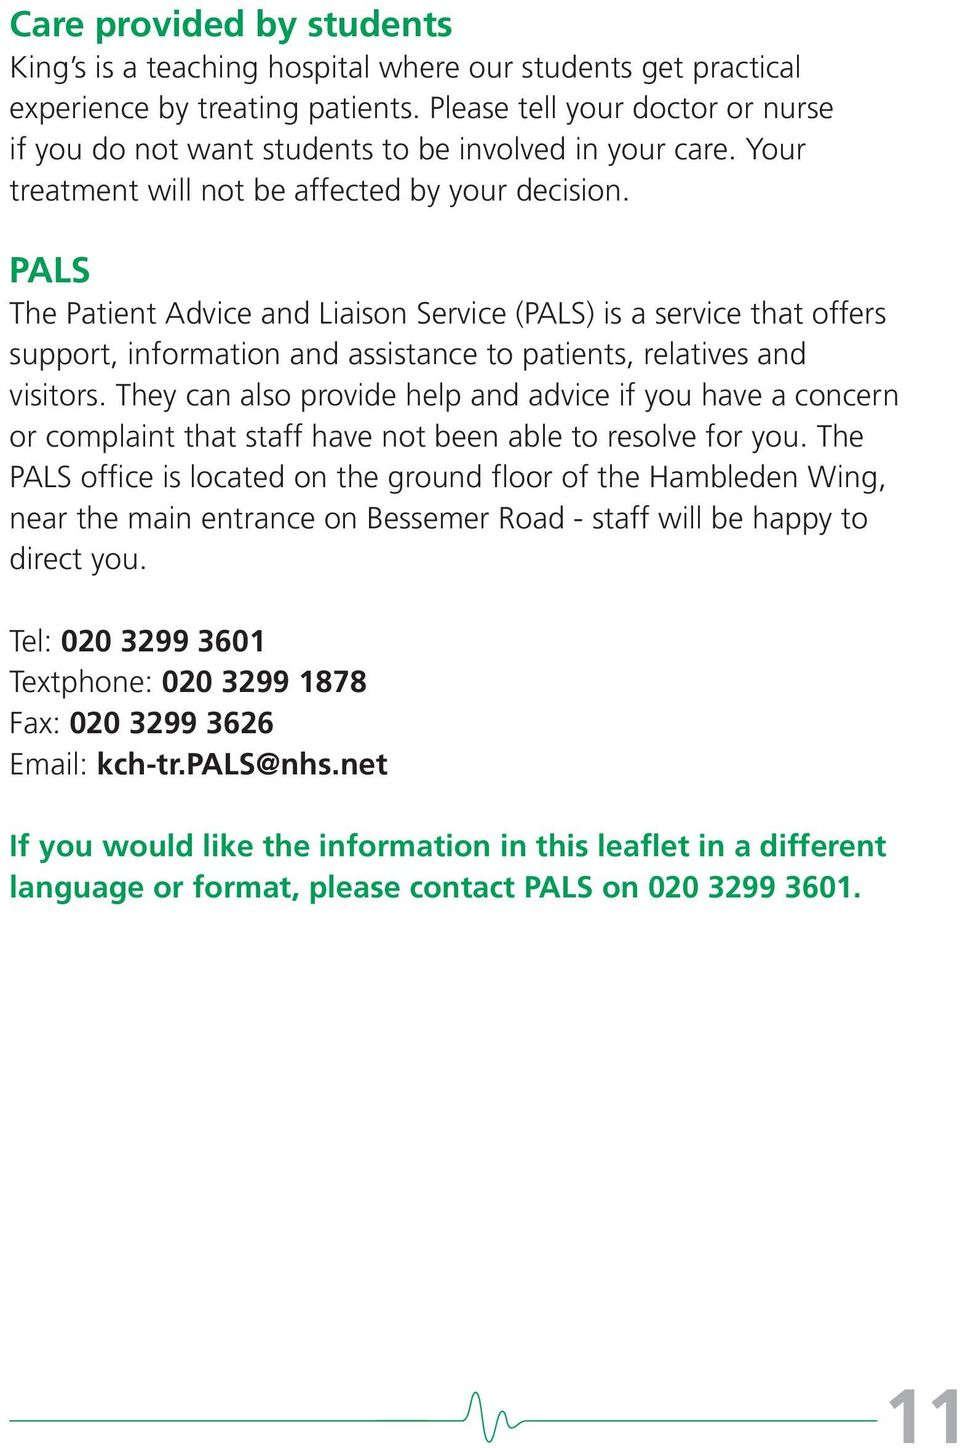 PALS The Patient Advice and Liaison Service (PALS) is a service that offers support, information and assistance to patients, relatives and visitors.